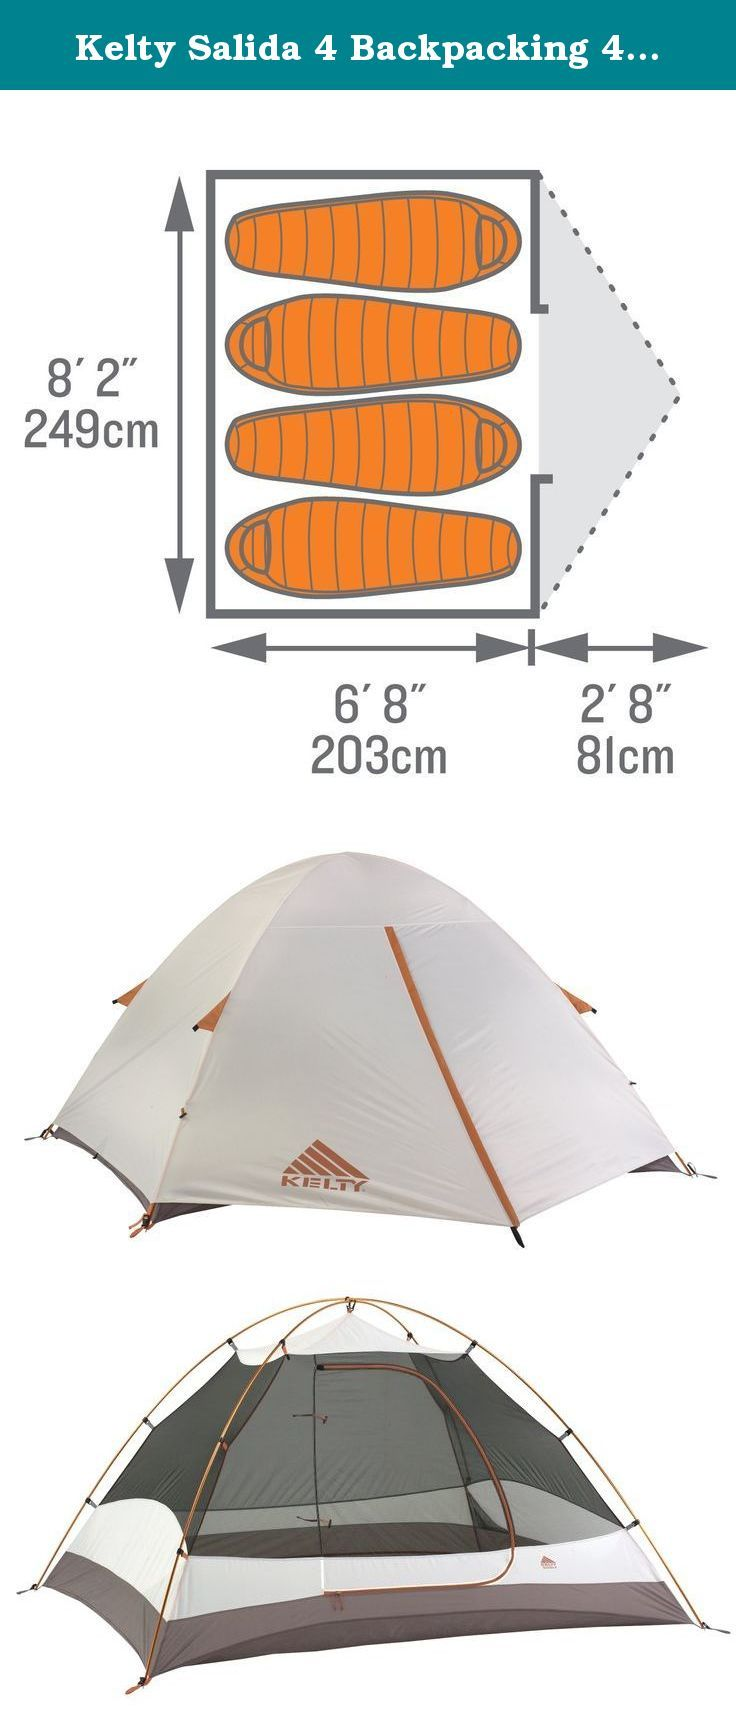 Kelty Salida 4 Backpacking 4 Person Tent. Designed for 3-season use the  sc 1 st  Pinterest & Kelty Salida 4 Backpacking 4 Person Tent. Designed for 3-season ...